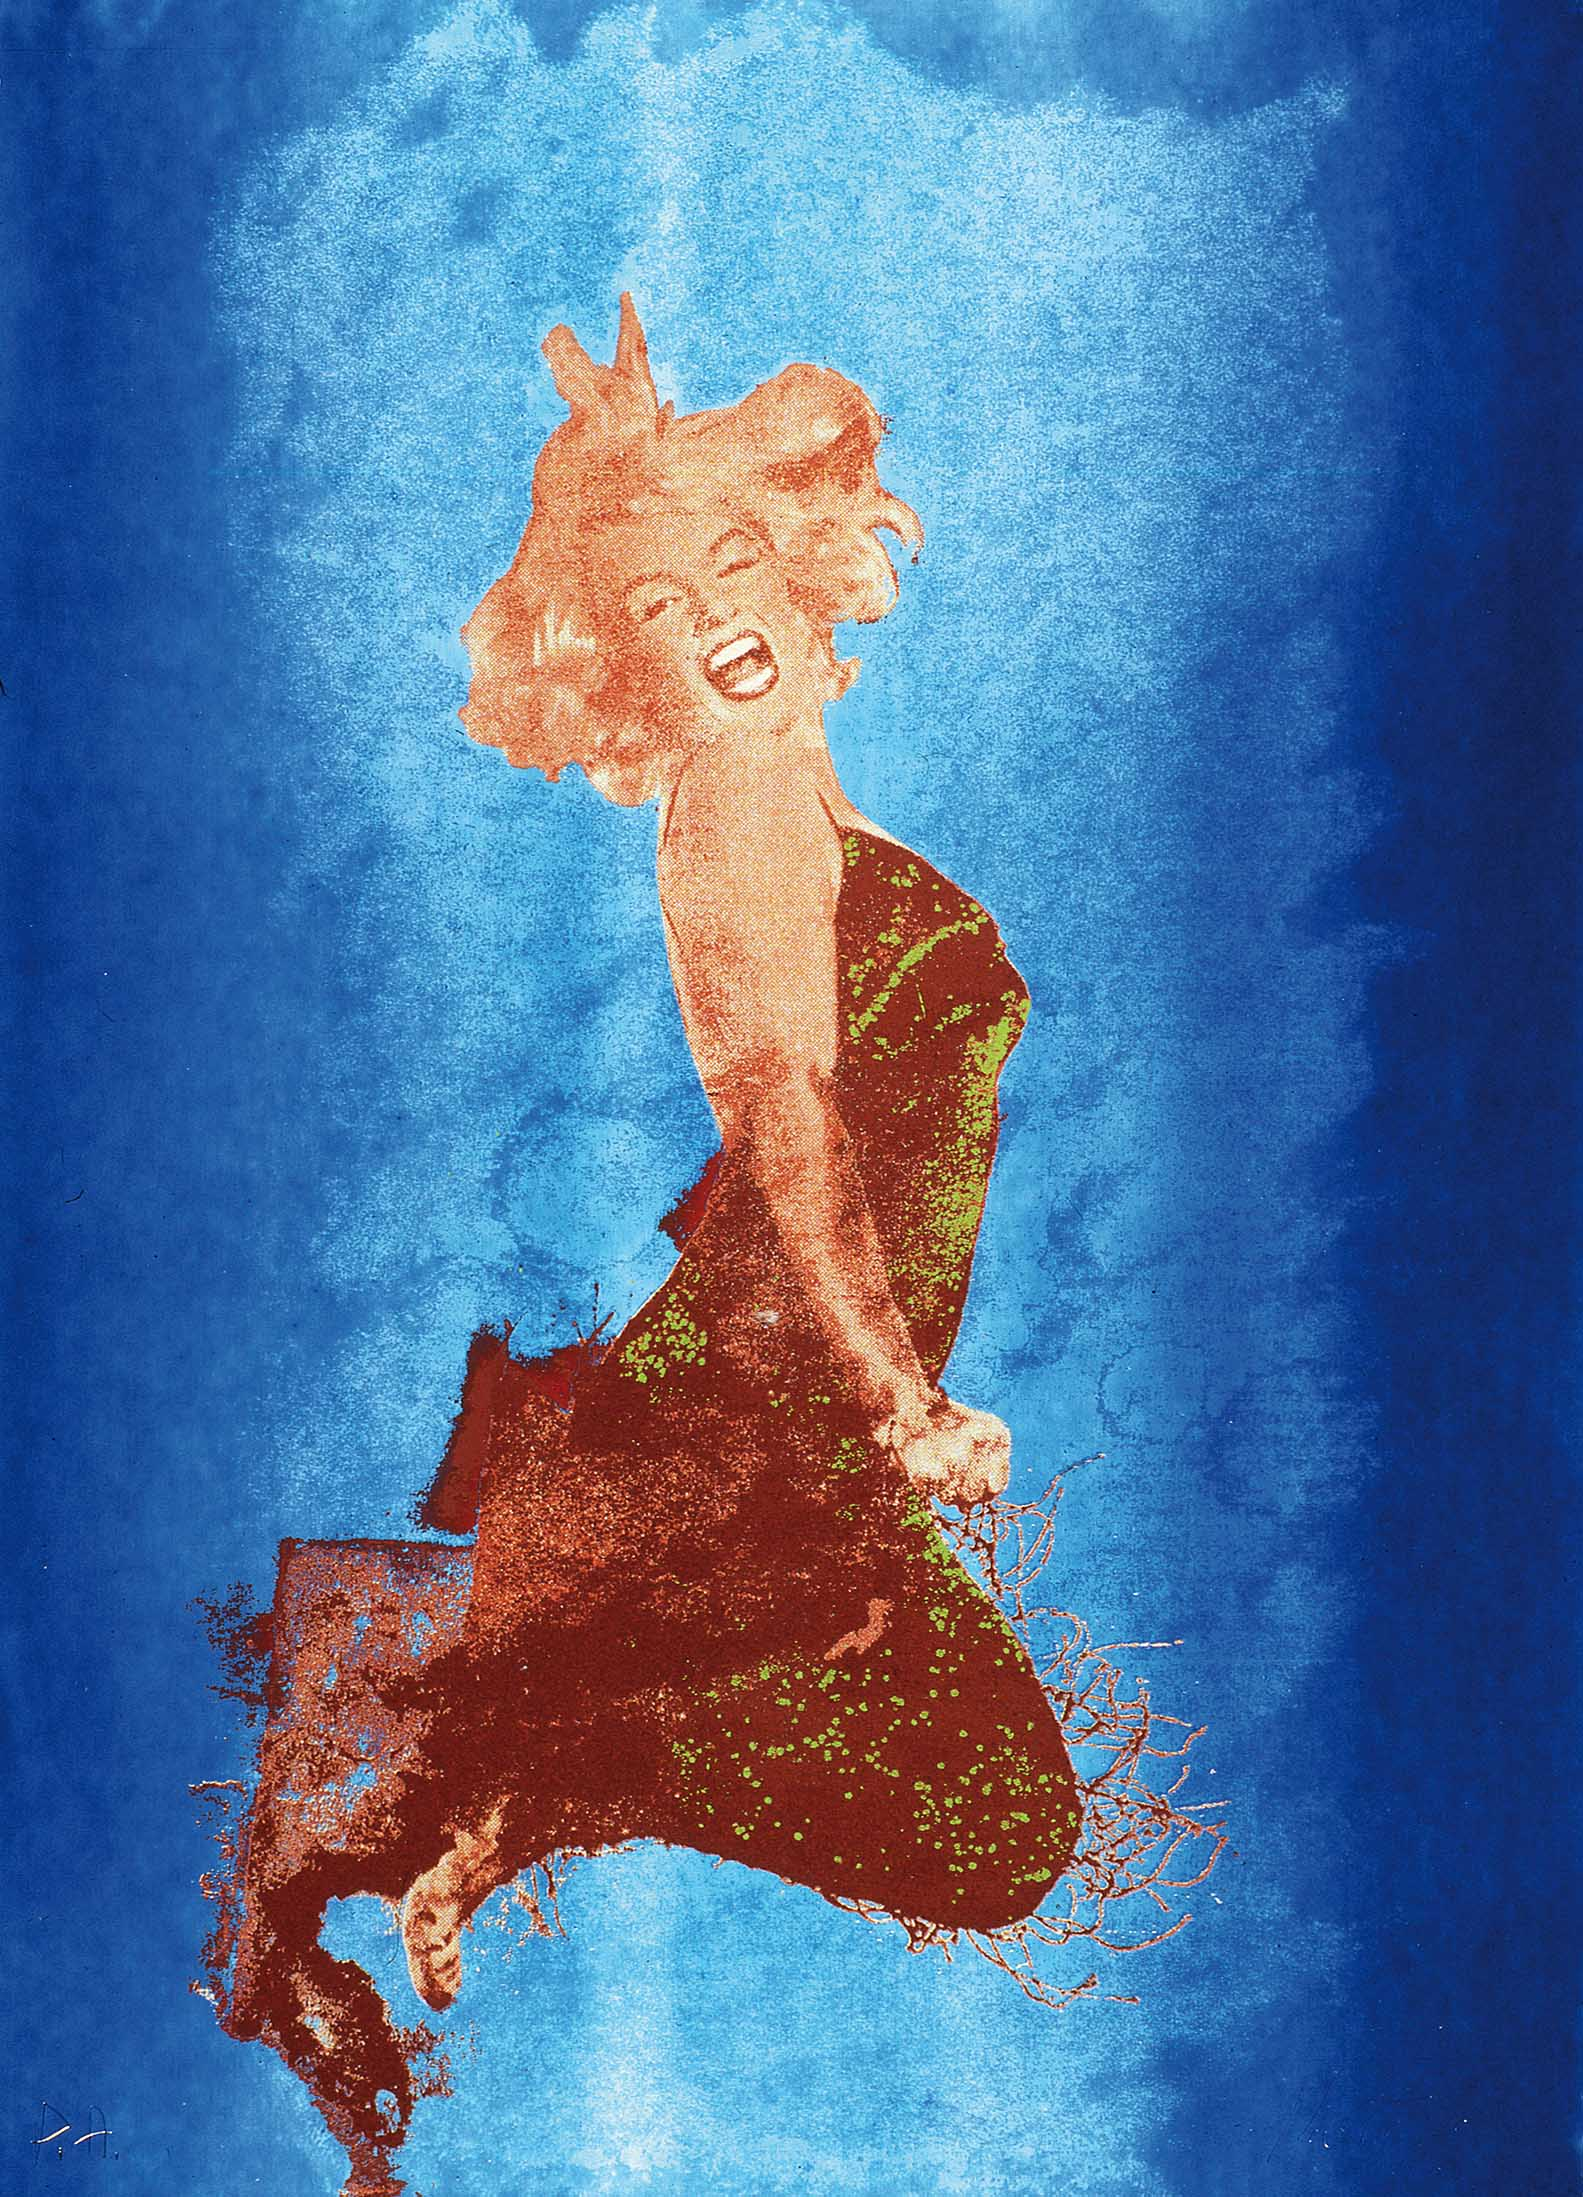 'Marilyn' 1974, 70 x 50 cm, 15 col. Cat. n.602